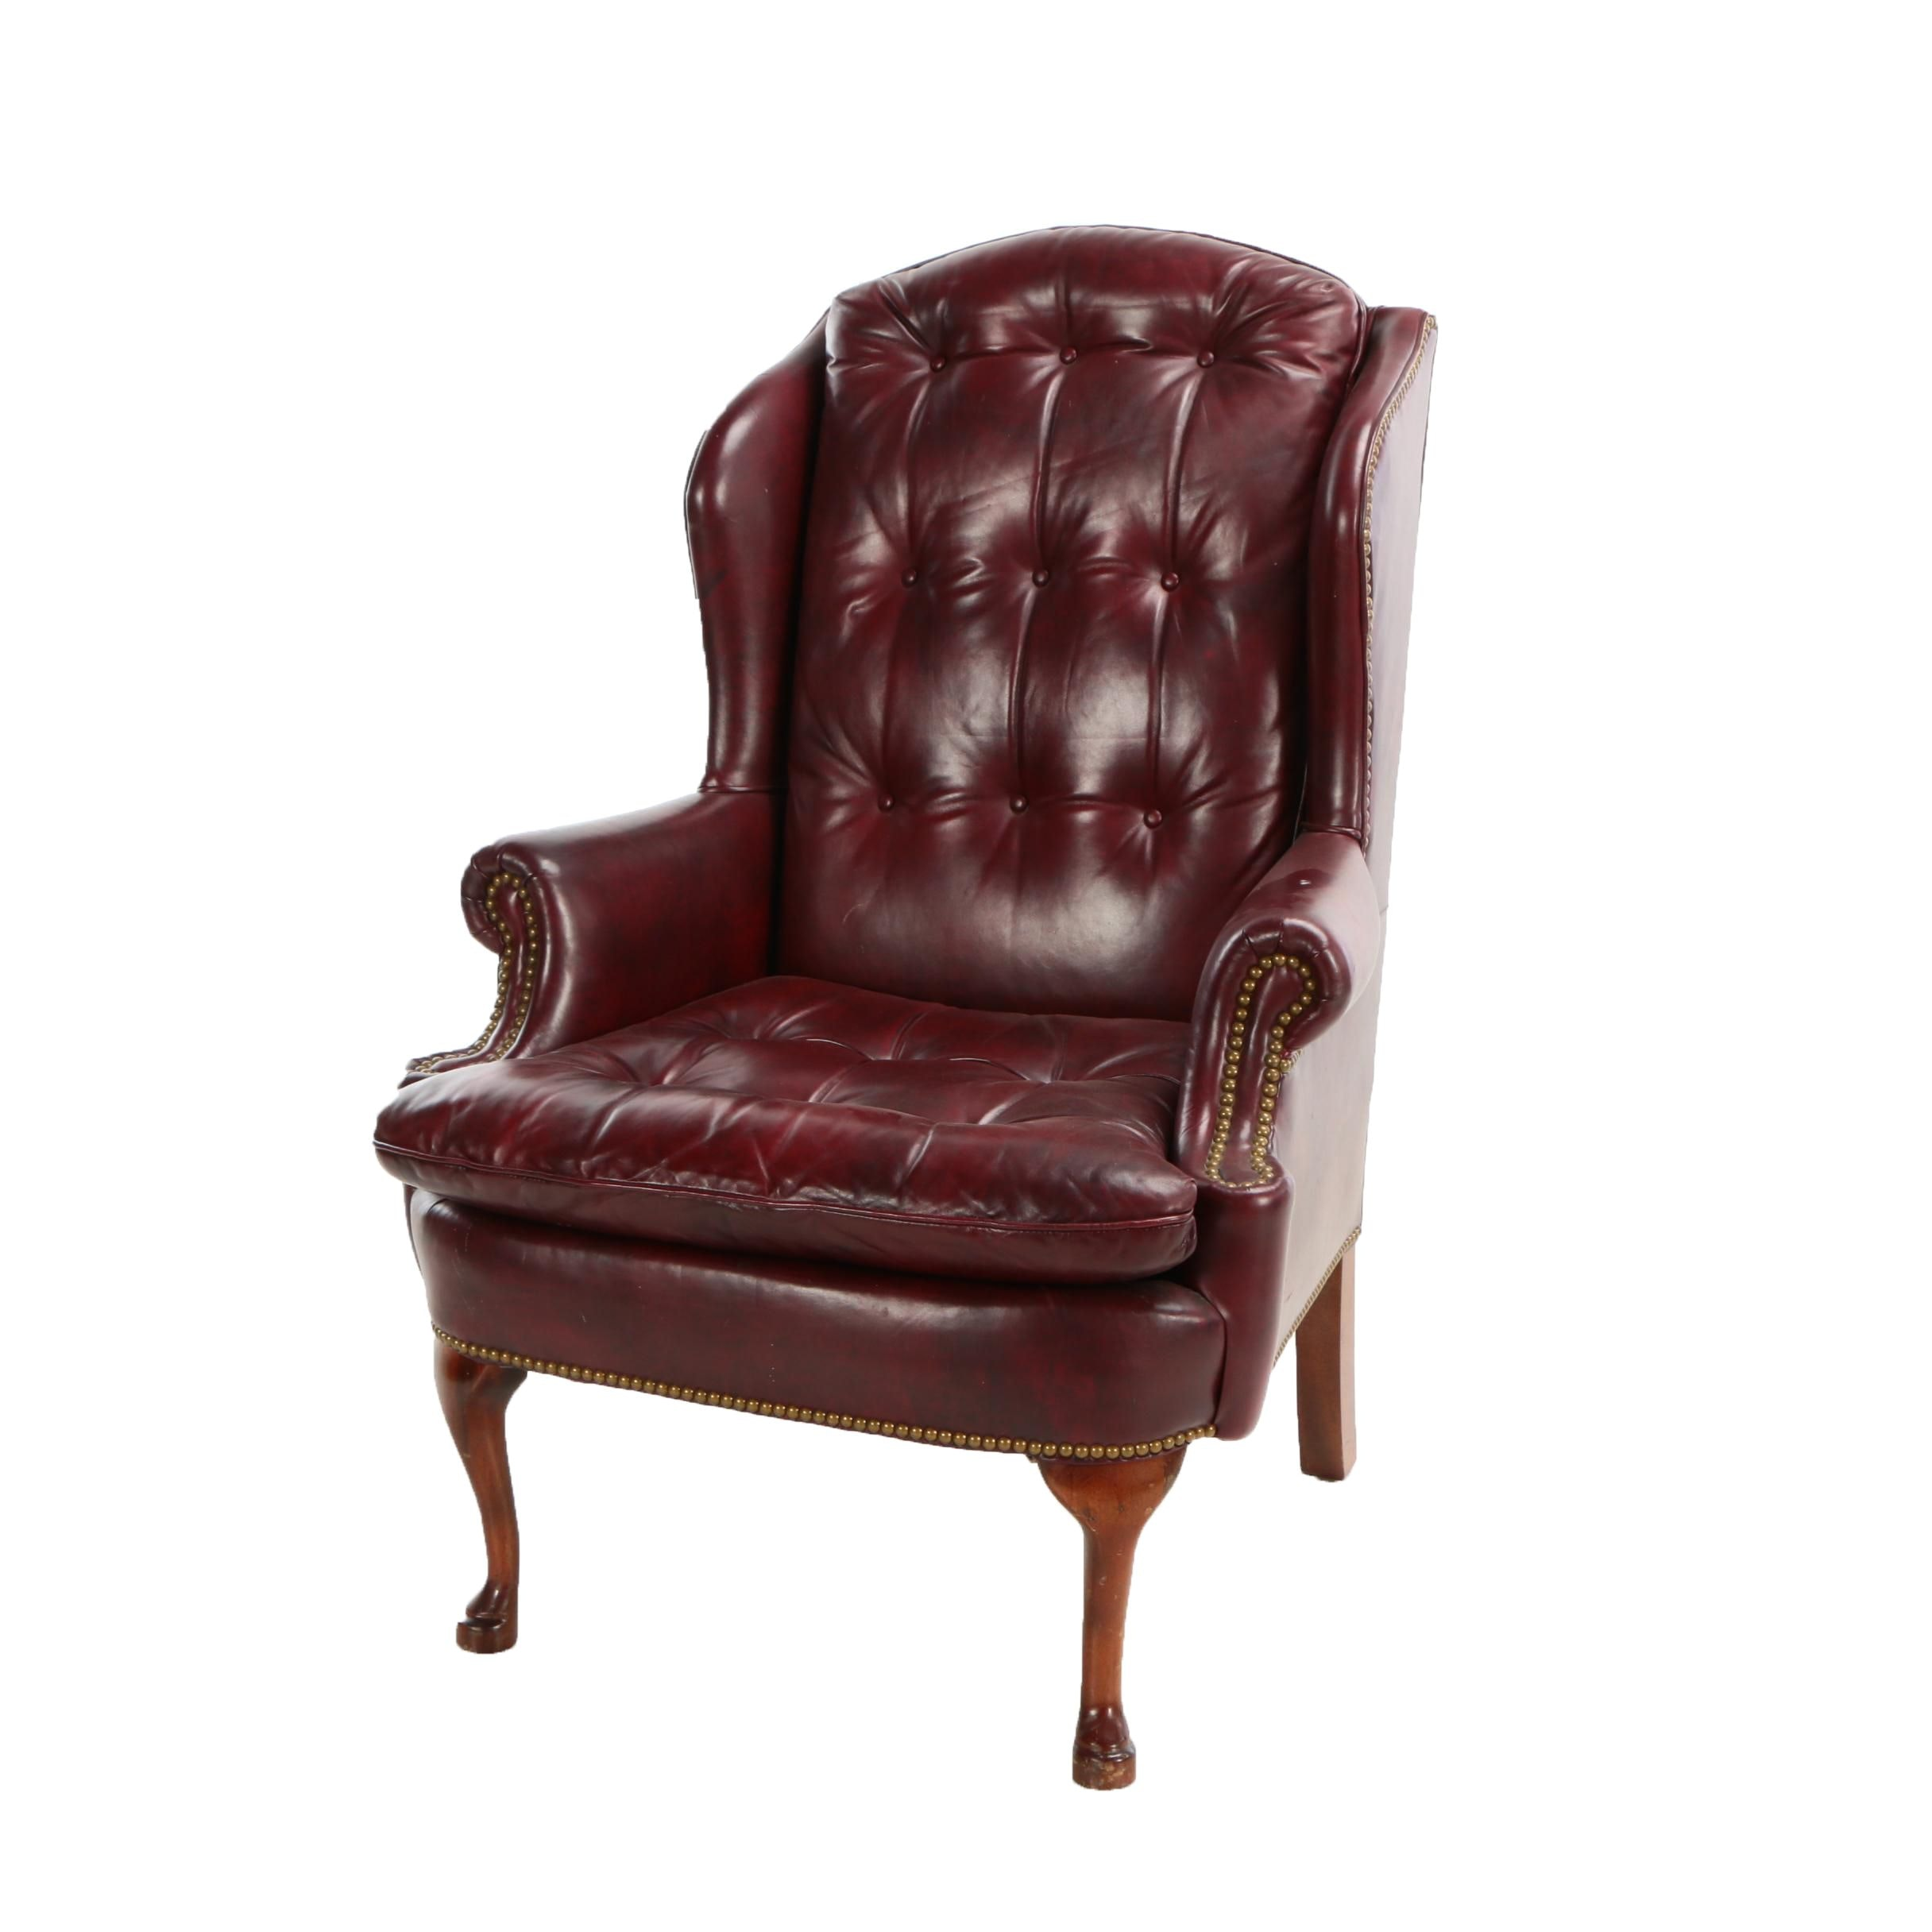 Contemporary Hancock & Moore Tufted Leather Wingback Chair